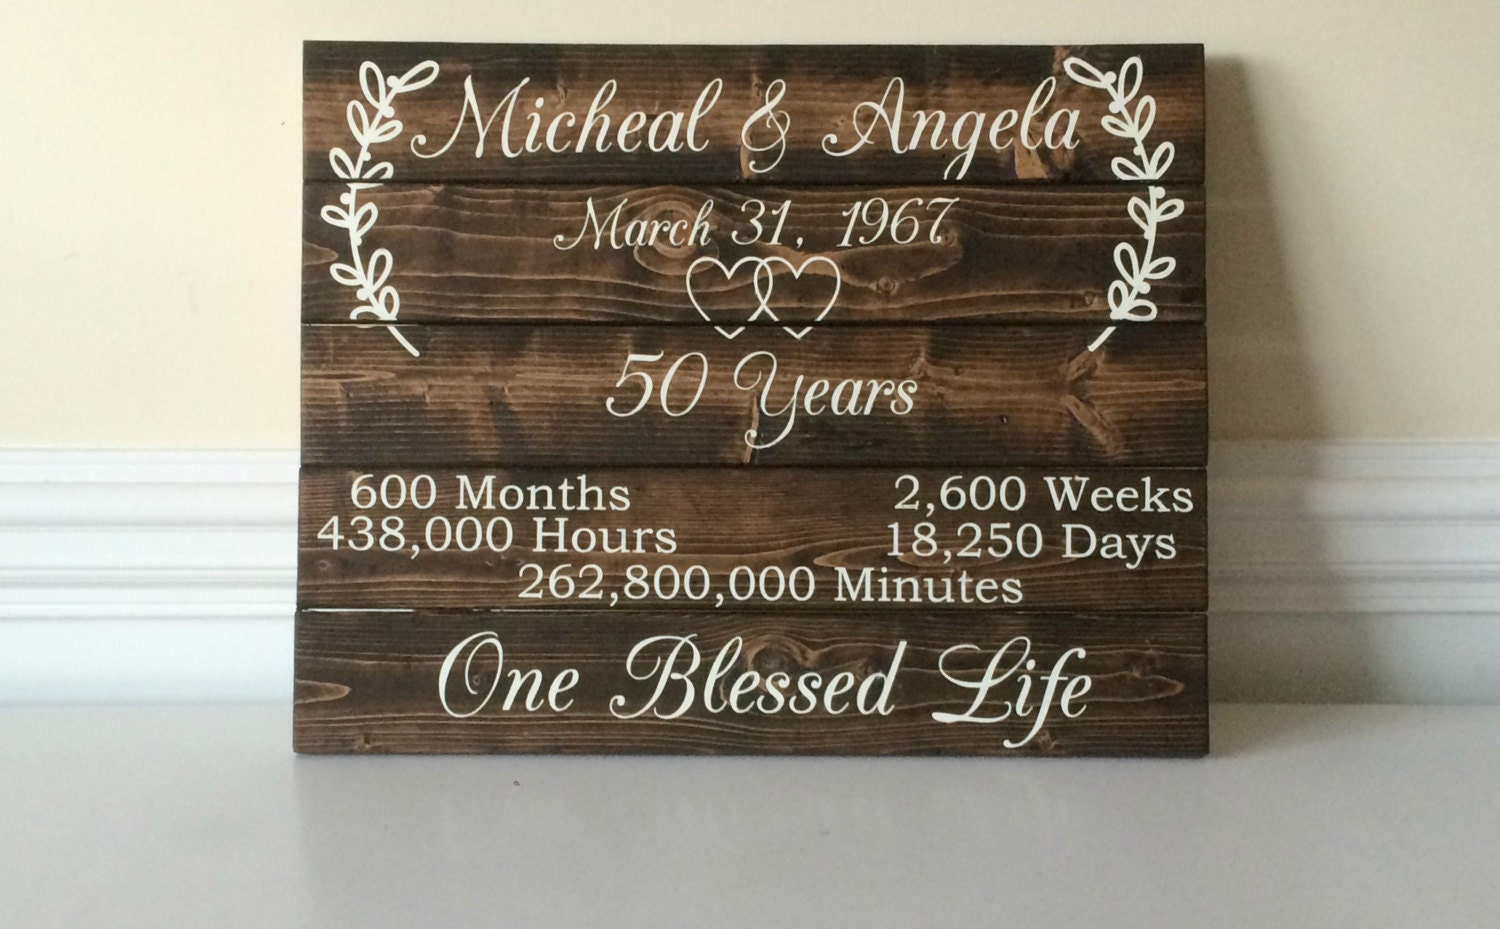 Gift Ideas For 50th Wedding Anniversary Party: 50 Year Anniversary 50th Anniversary Ideas Custom Wood Sign